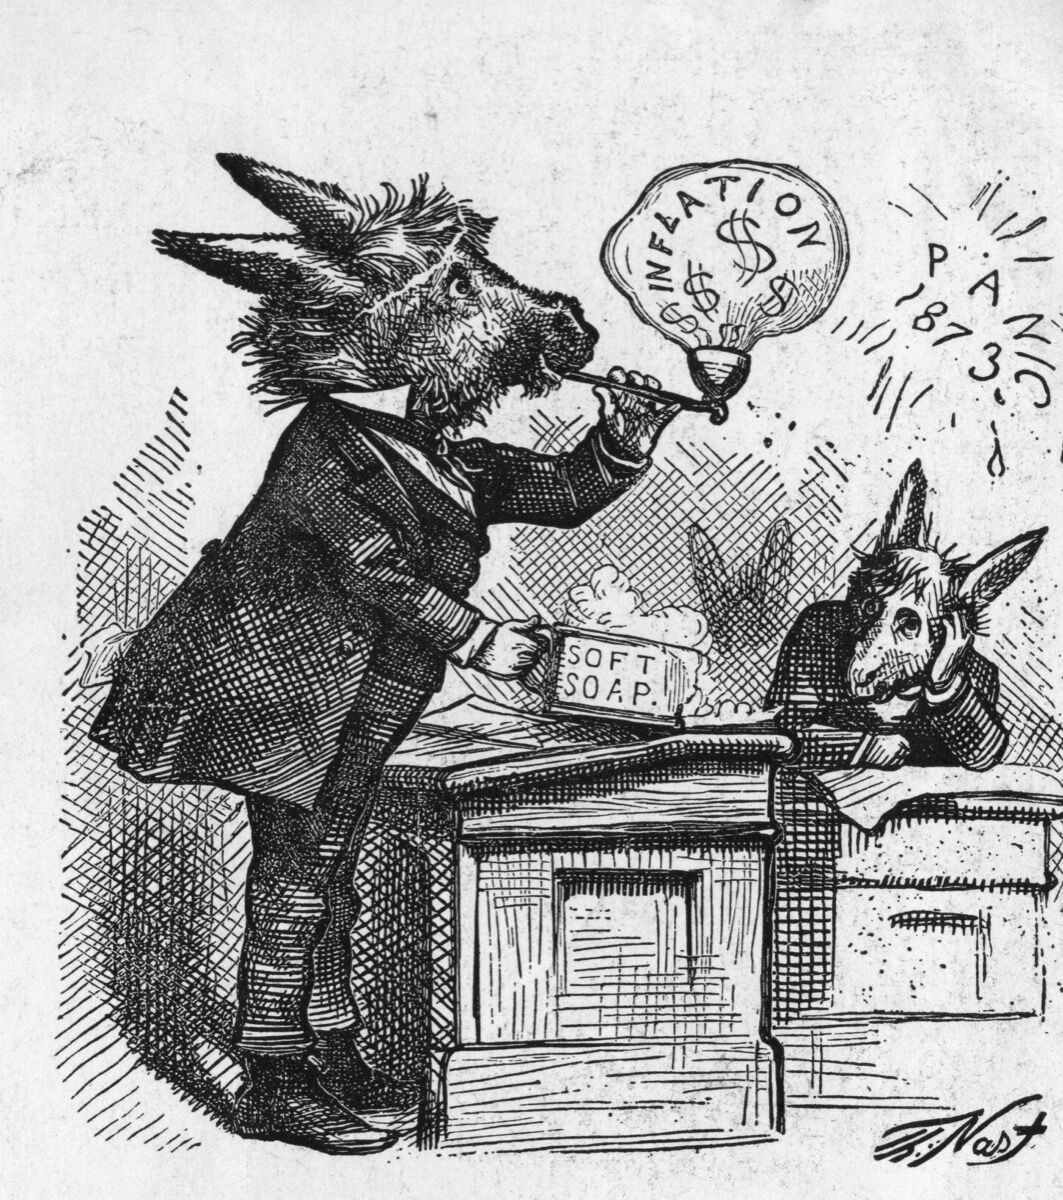 Nast cartoon depecting a group of Democratic Congressman as donkeys, 1873. Photo by Kean Collection/Getty Images.